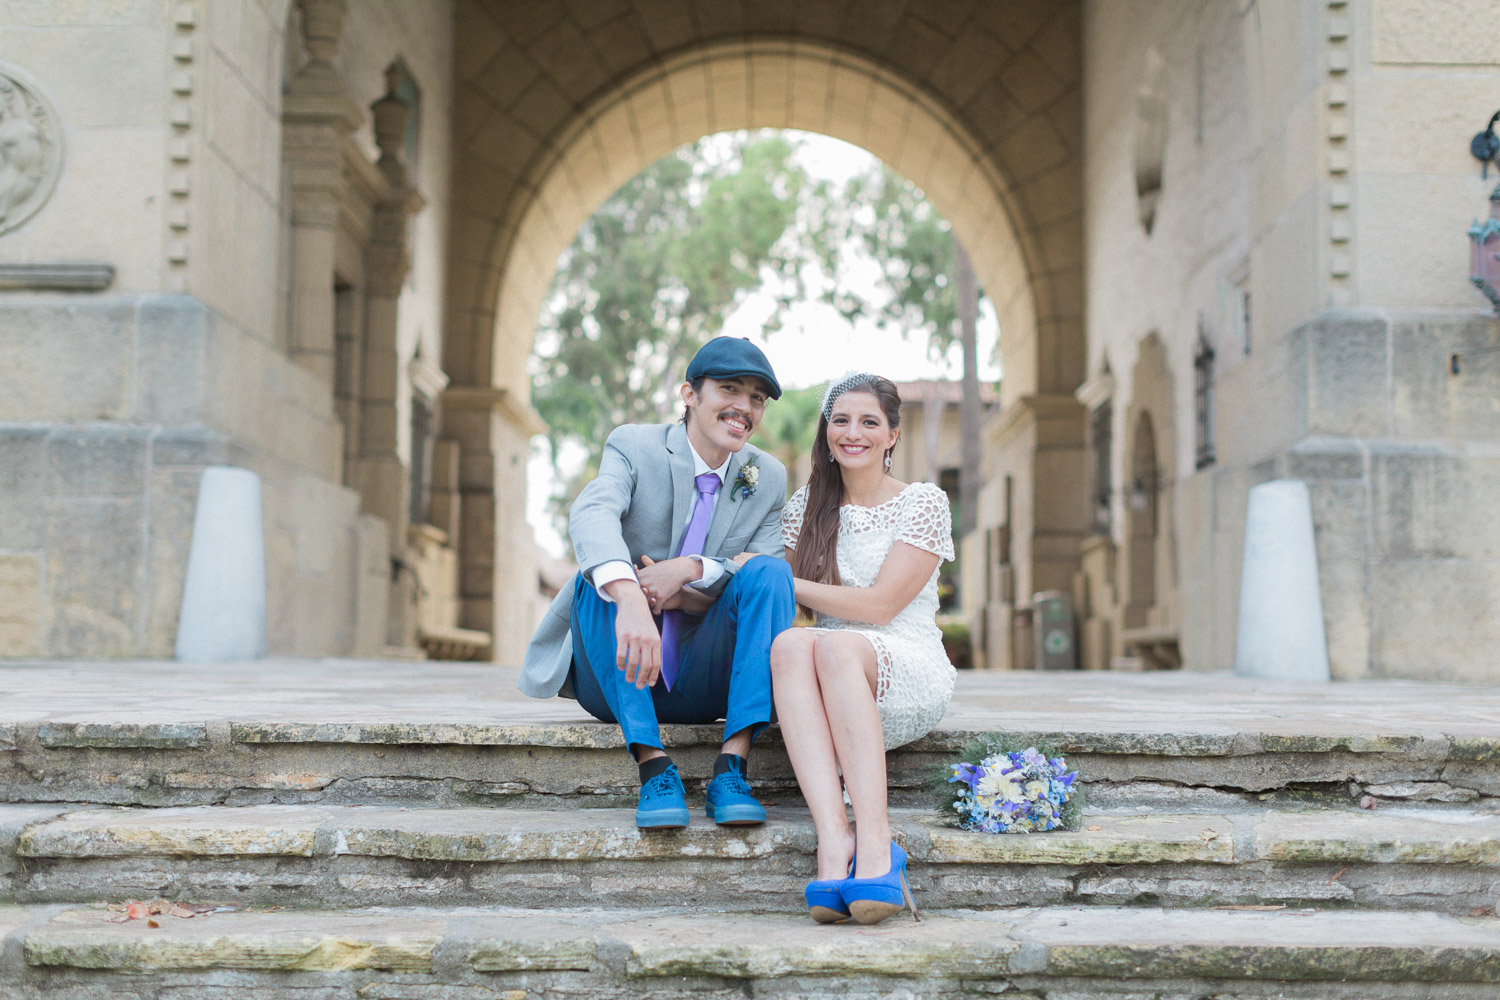 Wonder-Tribe-Santa-Barbara-Courthouse-Elopement-Wedding-Ventura-Professional-Photographer-02.jpg